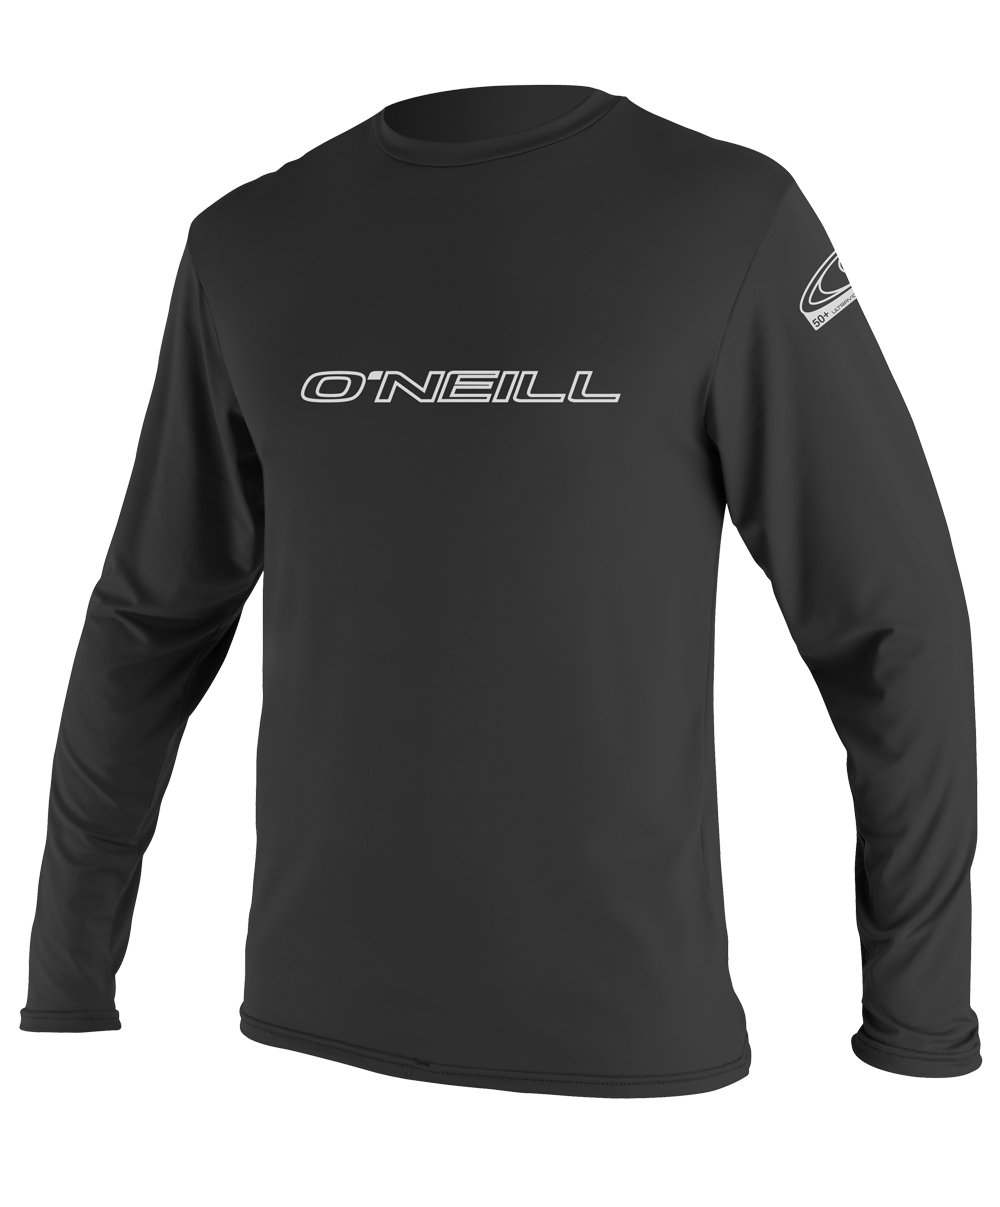 O'Neill Wetsuits Men's Basic Skins UPF 50+ Long Sleeve Sun Shirt, Black, Small by O'Neill Wetsuits